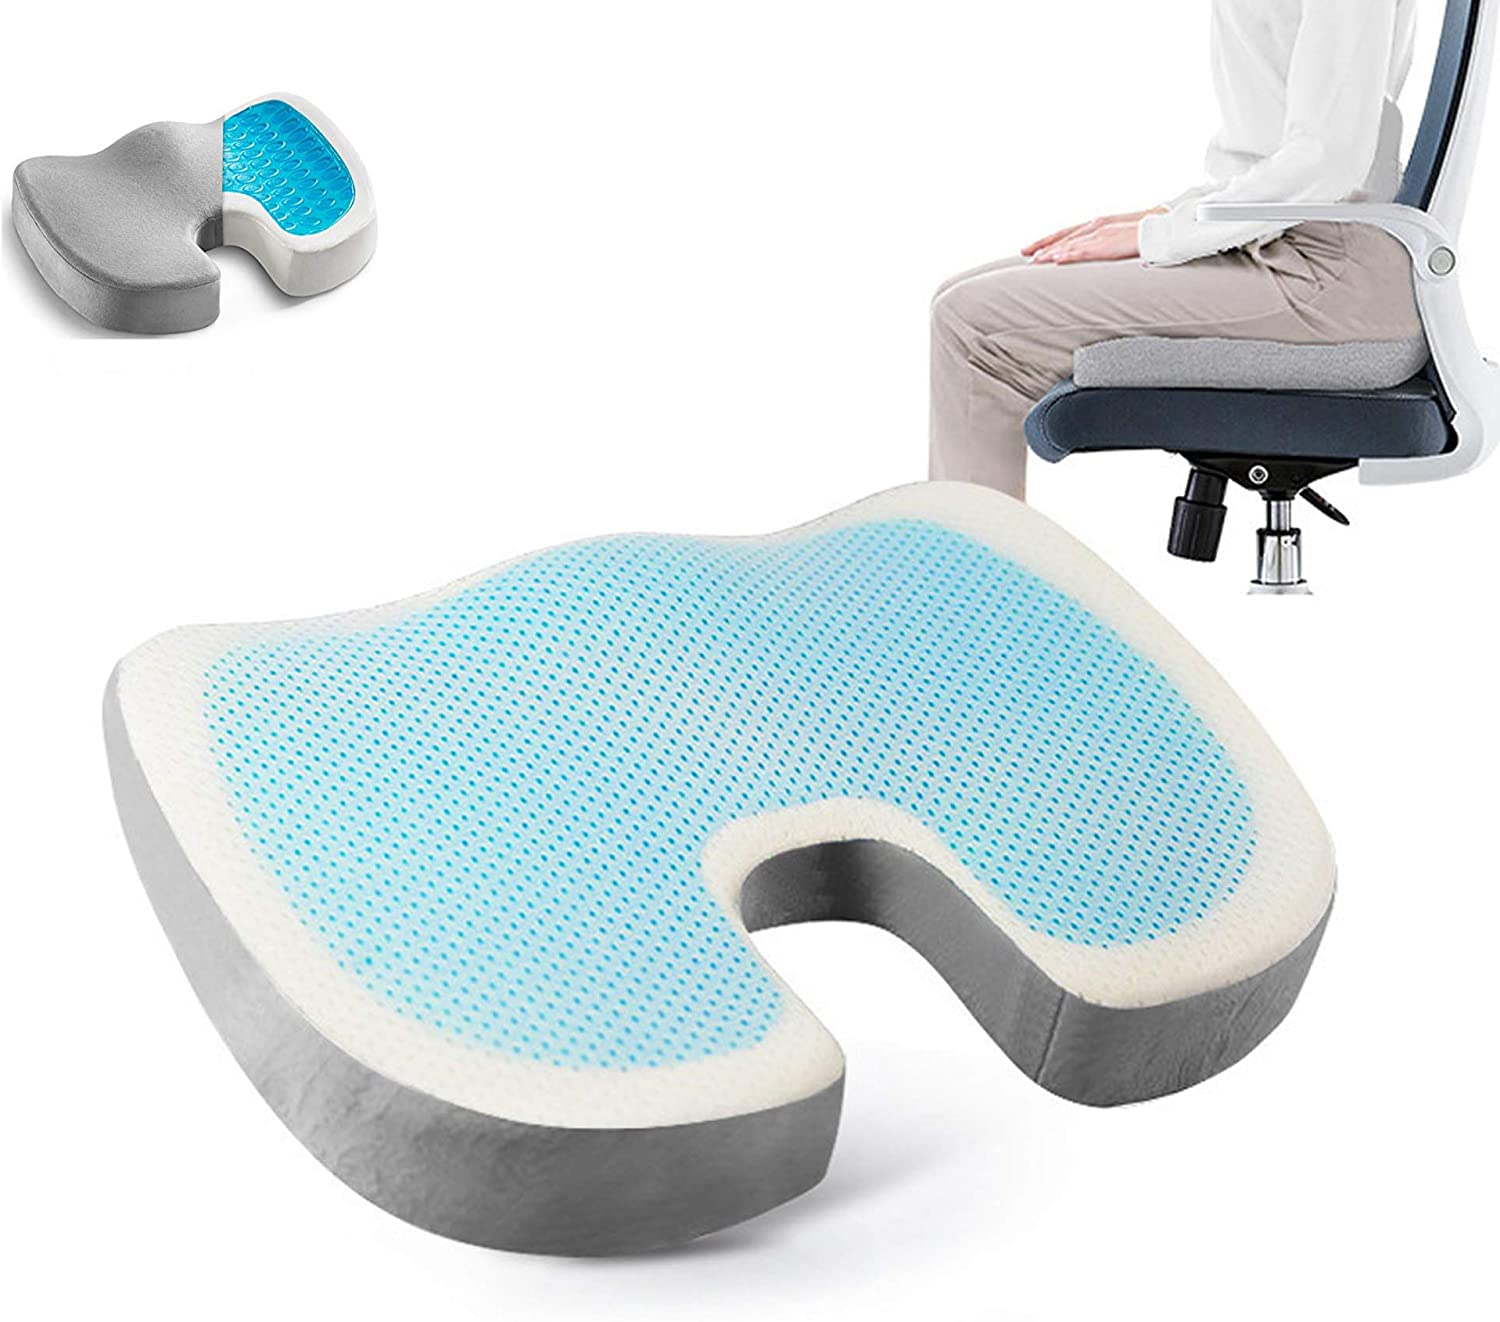 Luiryare Gel Seat Cushion Memory Foam Coccyx Orthopedic Pad Office Chair Car Tailbone Pillow Relieves Back, Hip, Tailbone, Sciatica Pain (White, One Size)